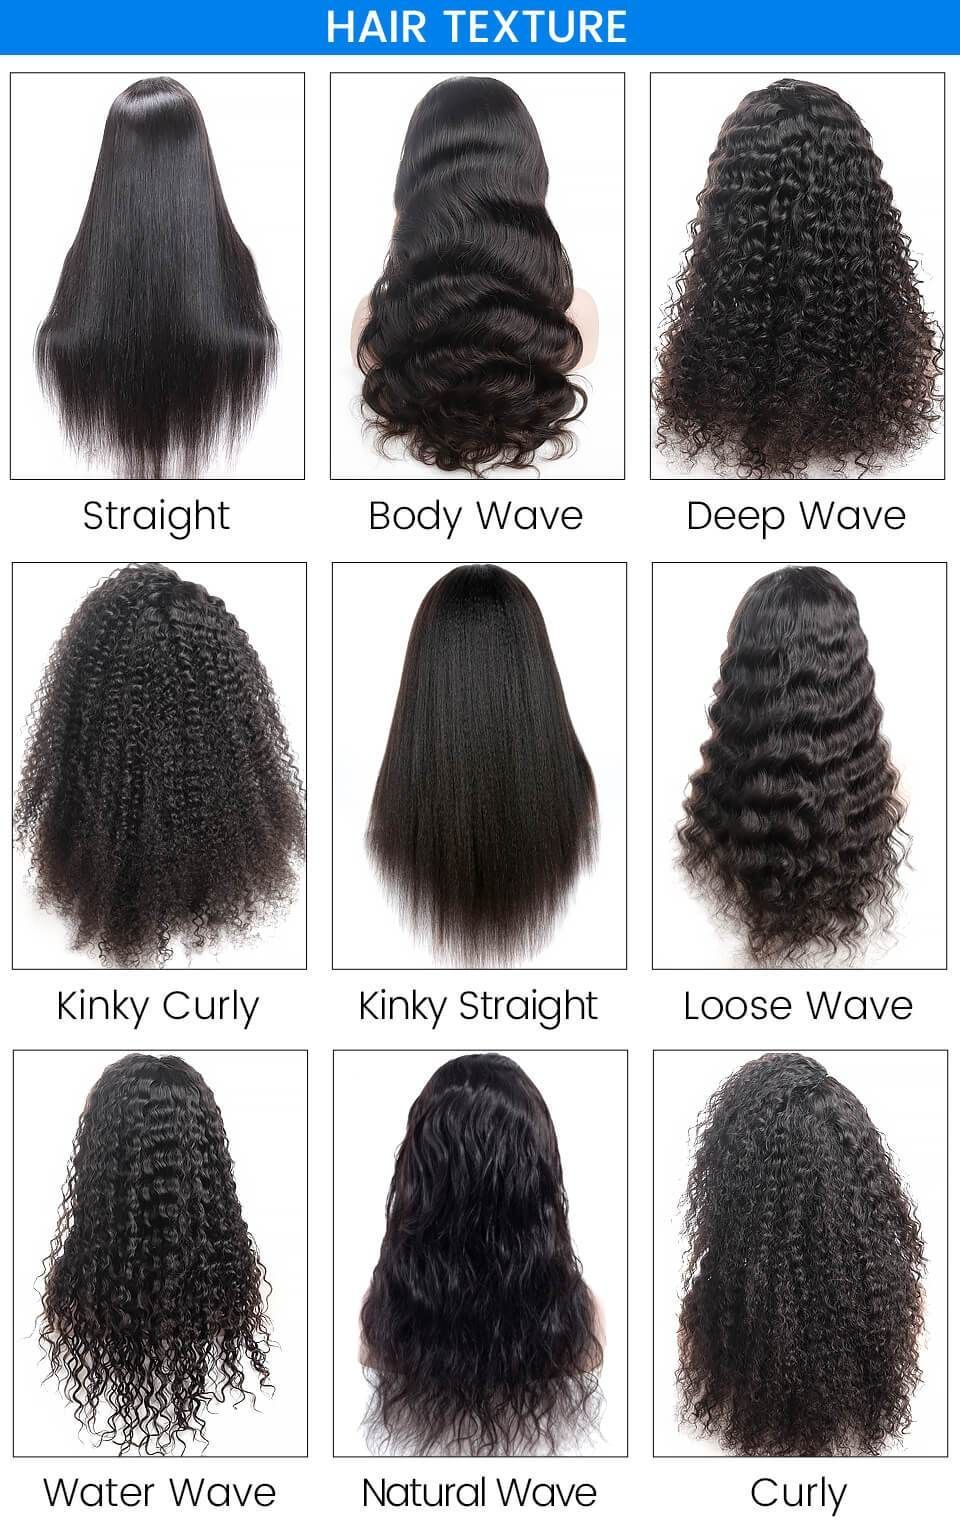 Hair Texture In 2020 Wig Hairstyles Curly Hair Styles Textured Hair